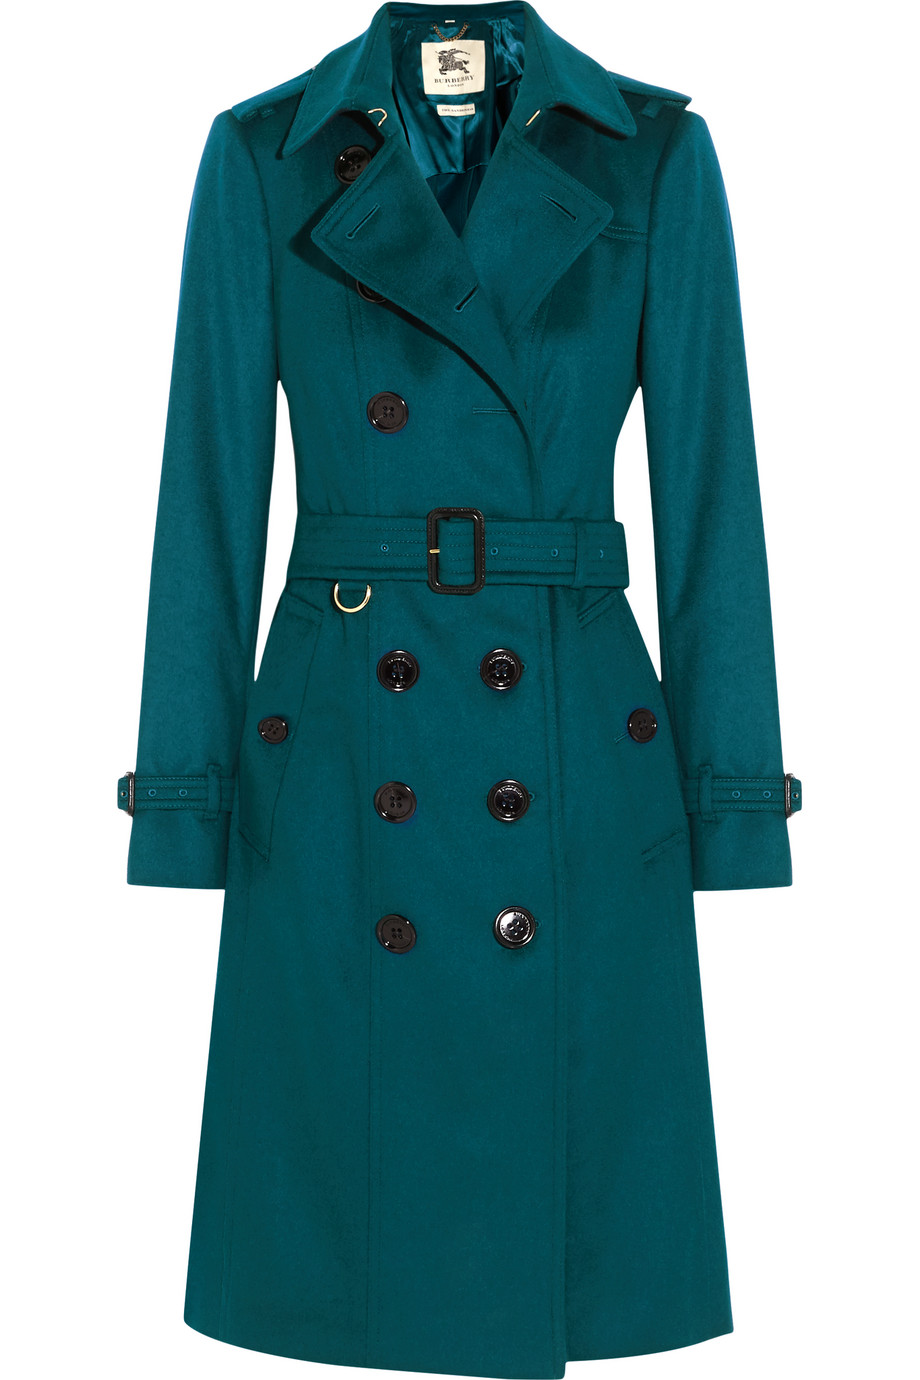 Burberry London Brushed-Cashmere Trench Coat, Teal, Women's, Size: 12